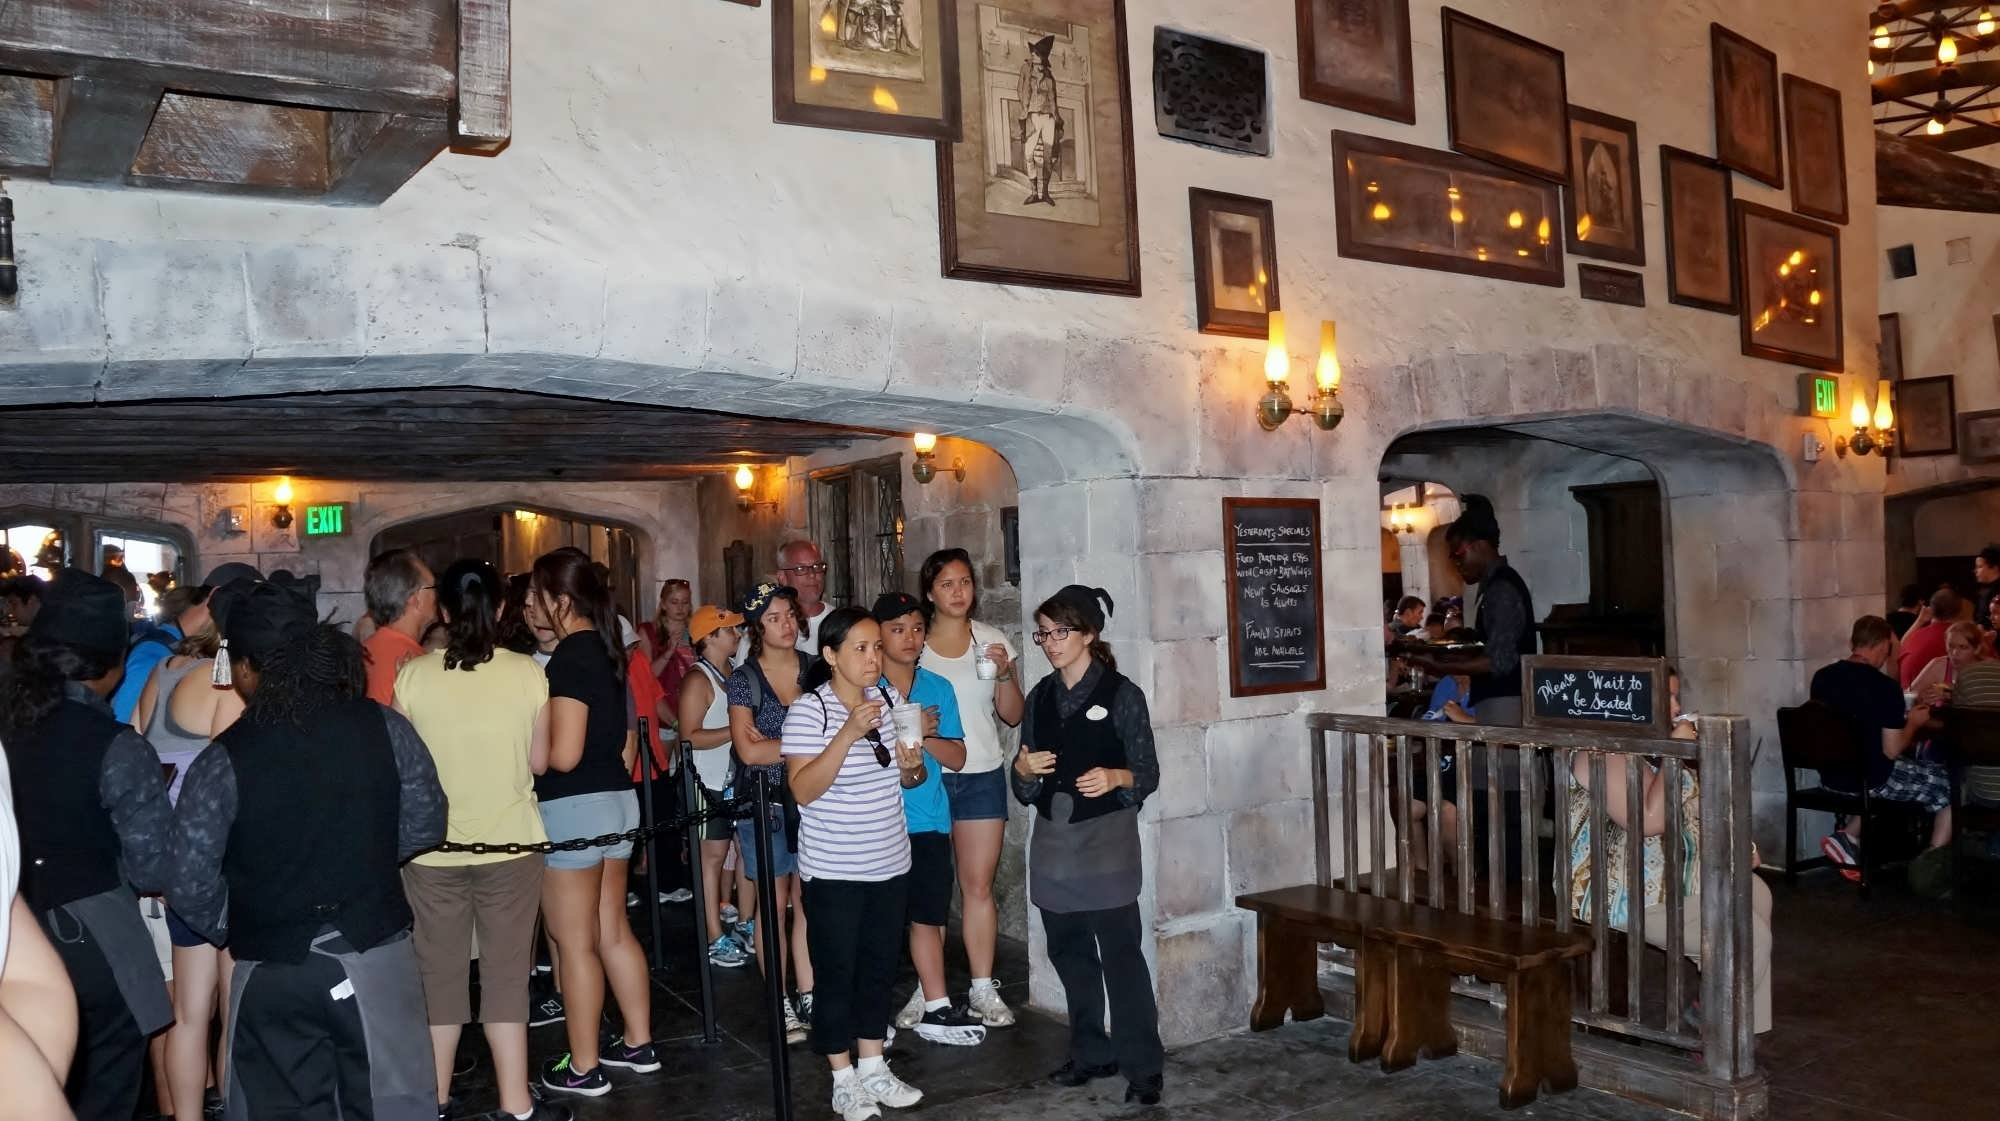 More of the queue at The Leaky Cauldron